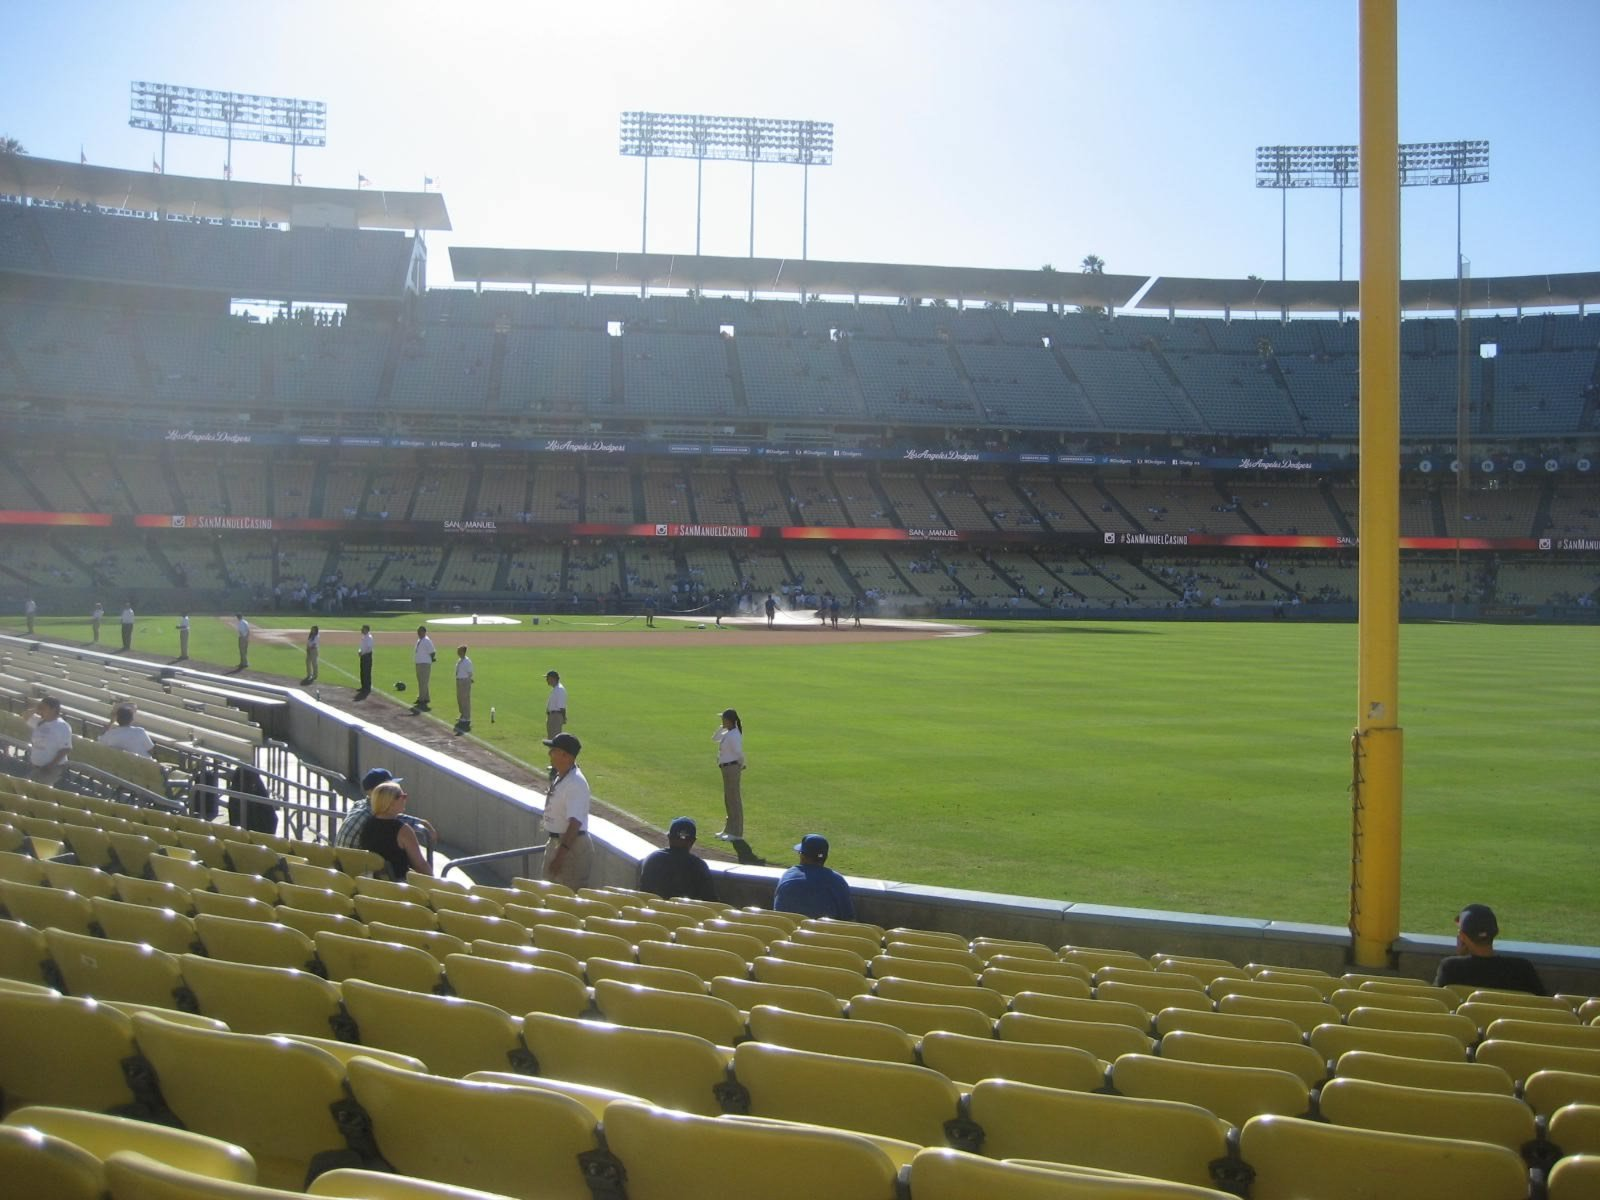 Seat View for Dodger Stadium Section 48, Row L, Seat 15